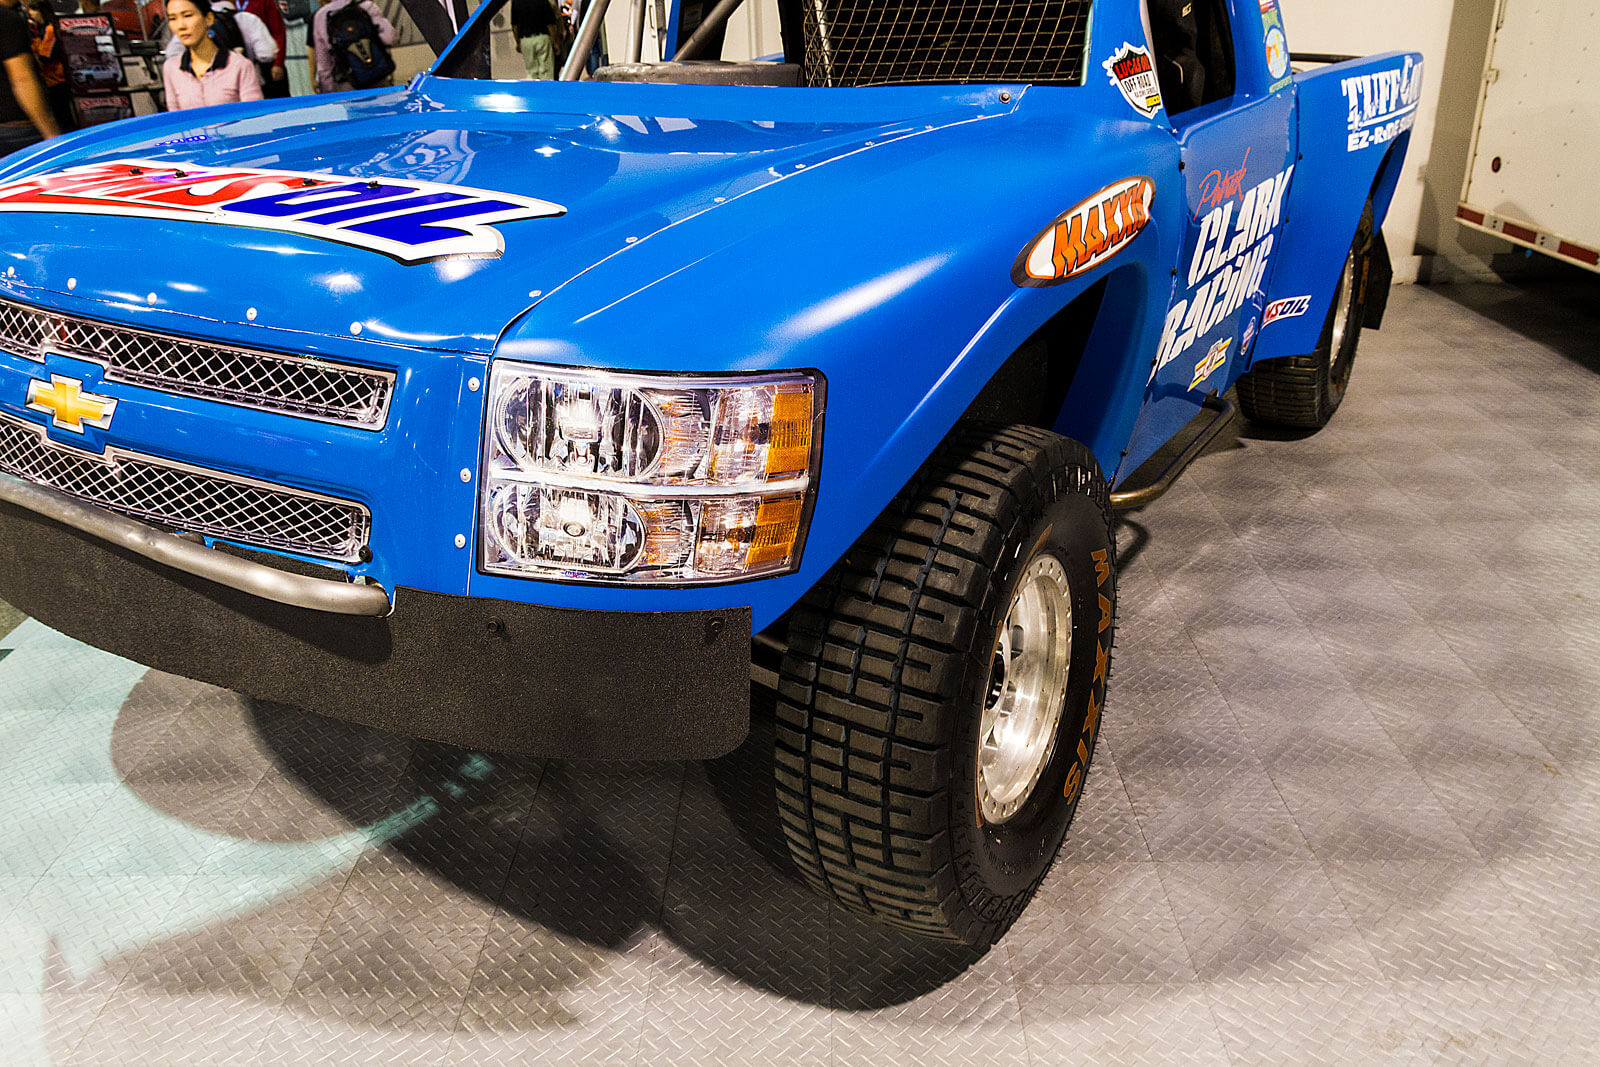 Off-road racing truck parked on RaceDeck Diamond